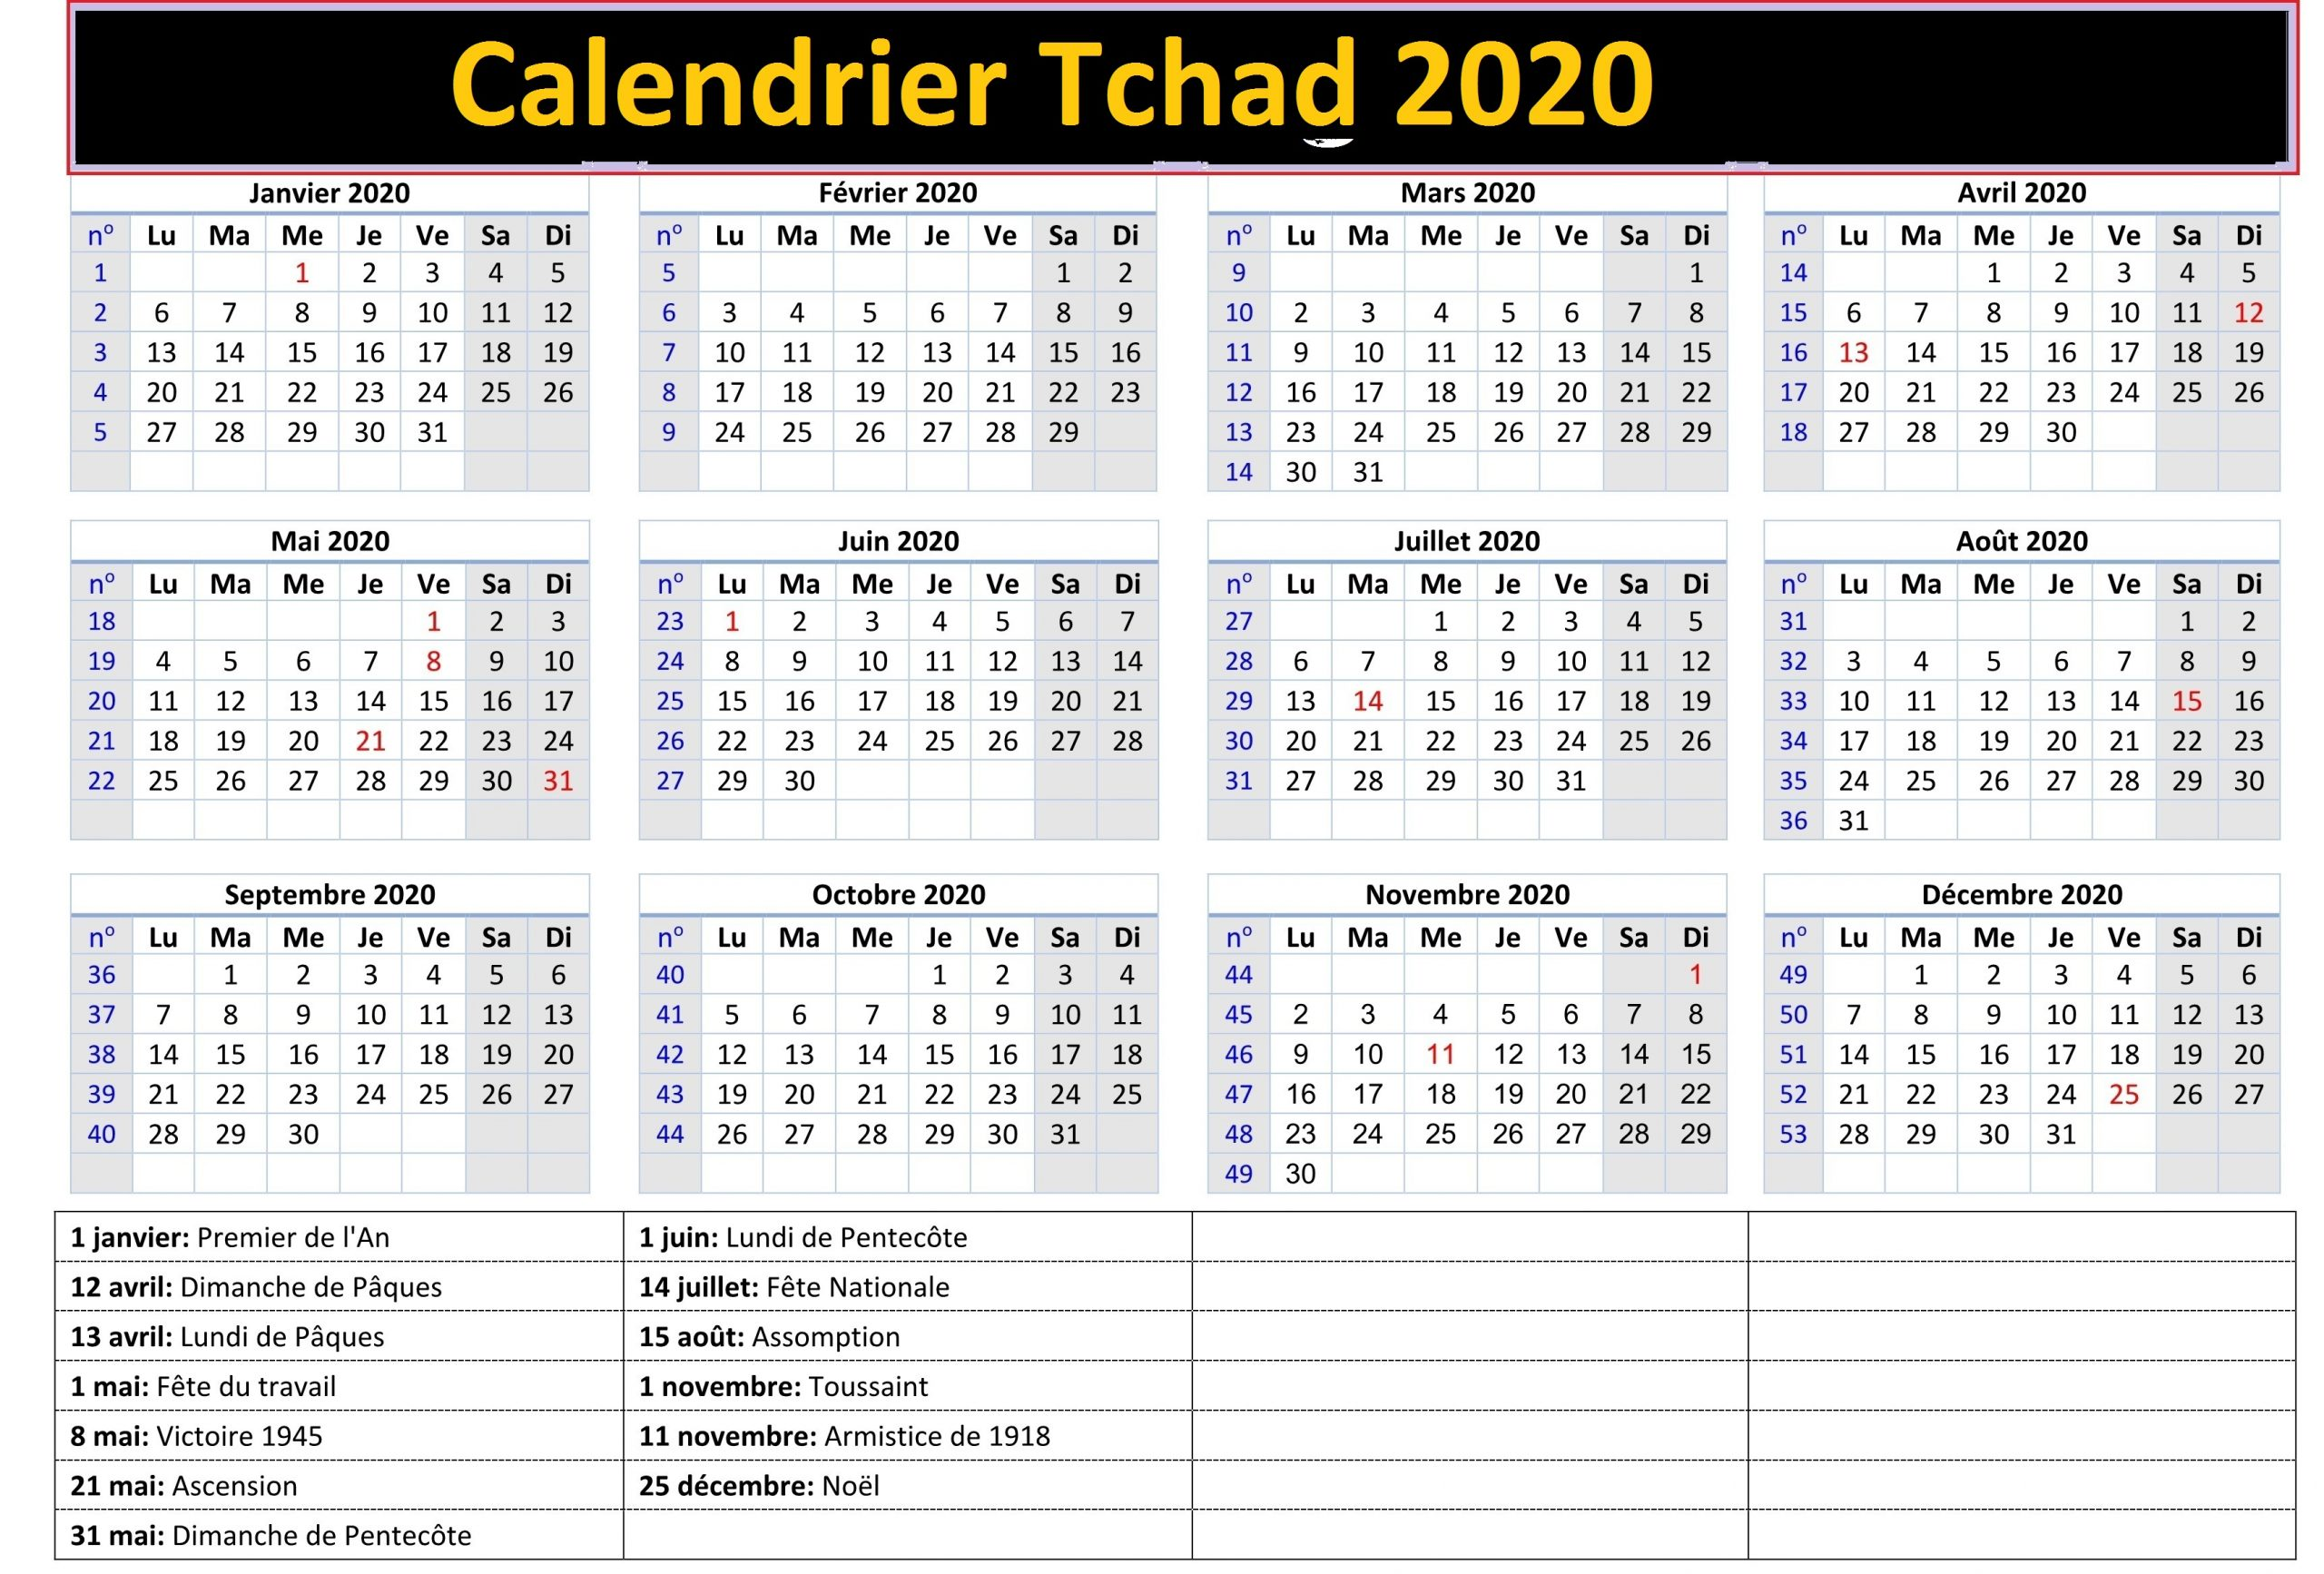 Calendrier Agricole Tchad 2020